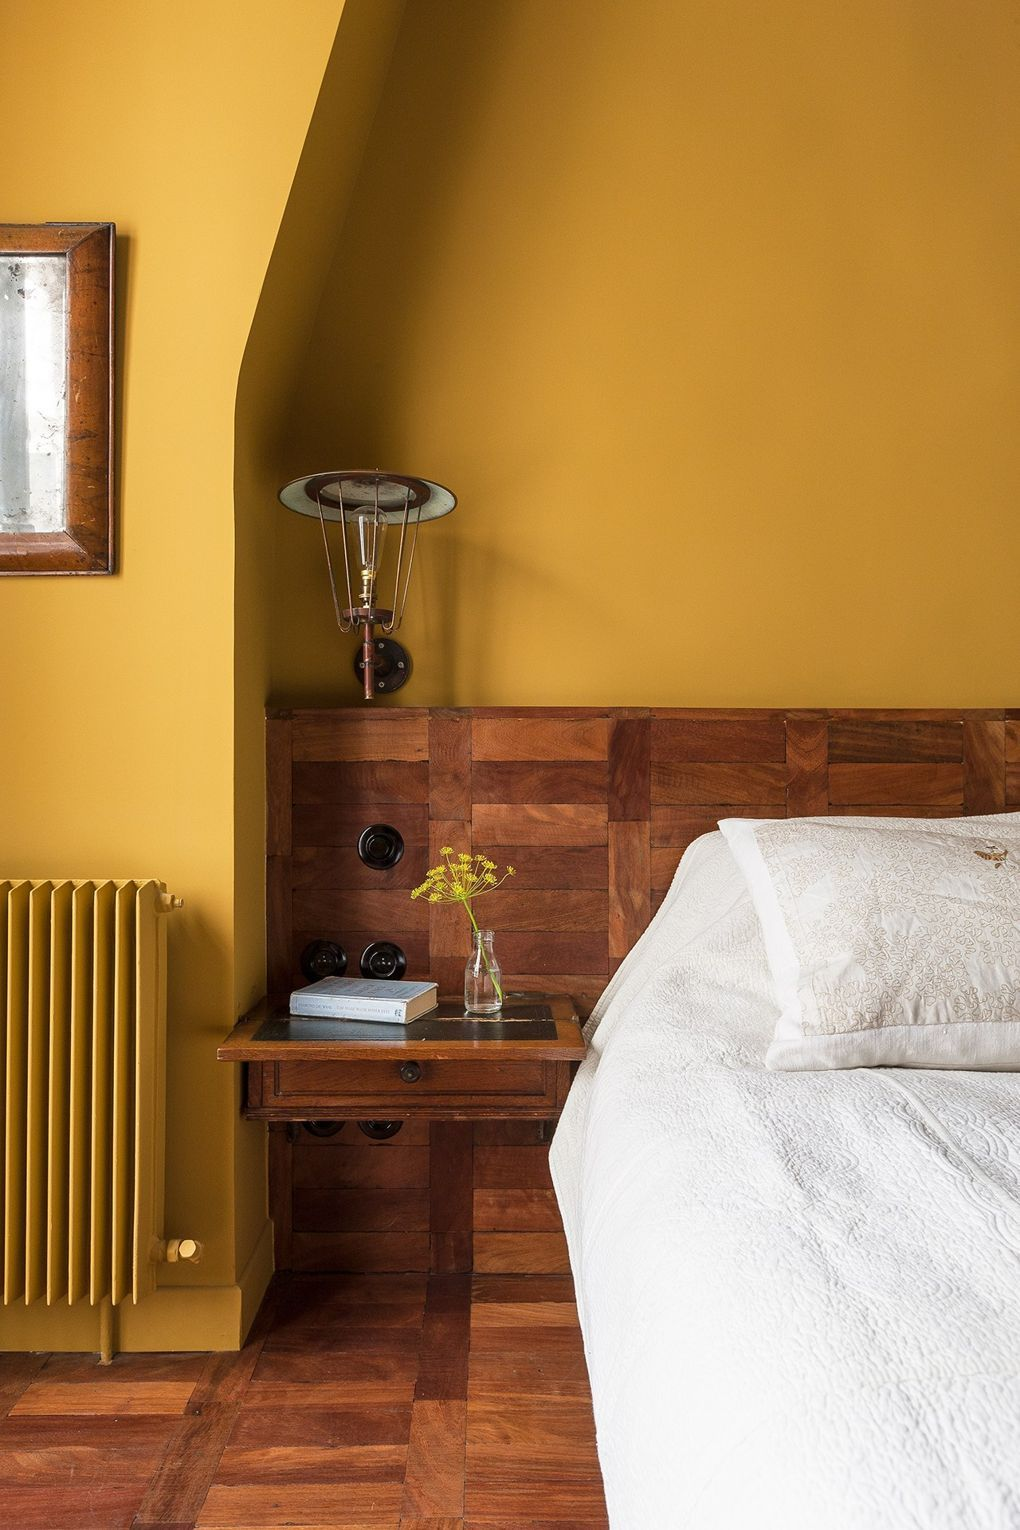 11 reasons why yellow is the colour of the moment